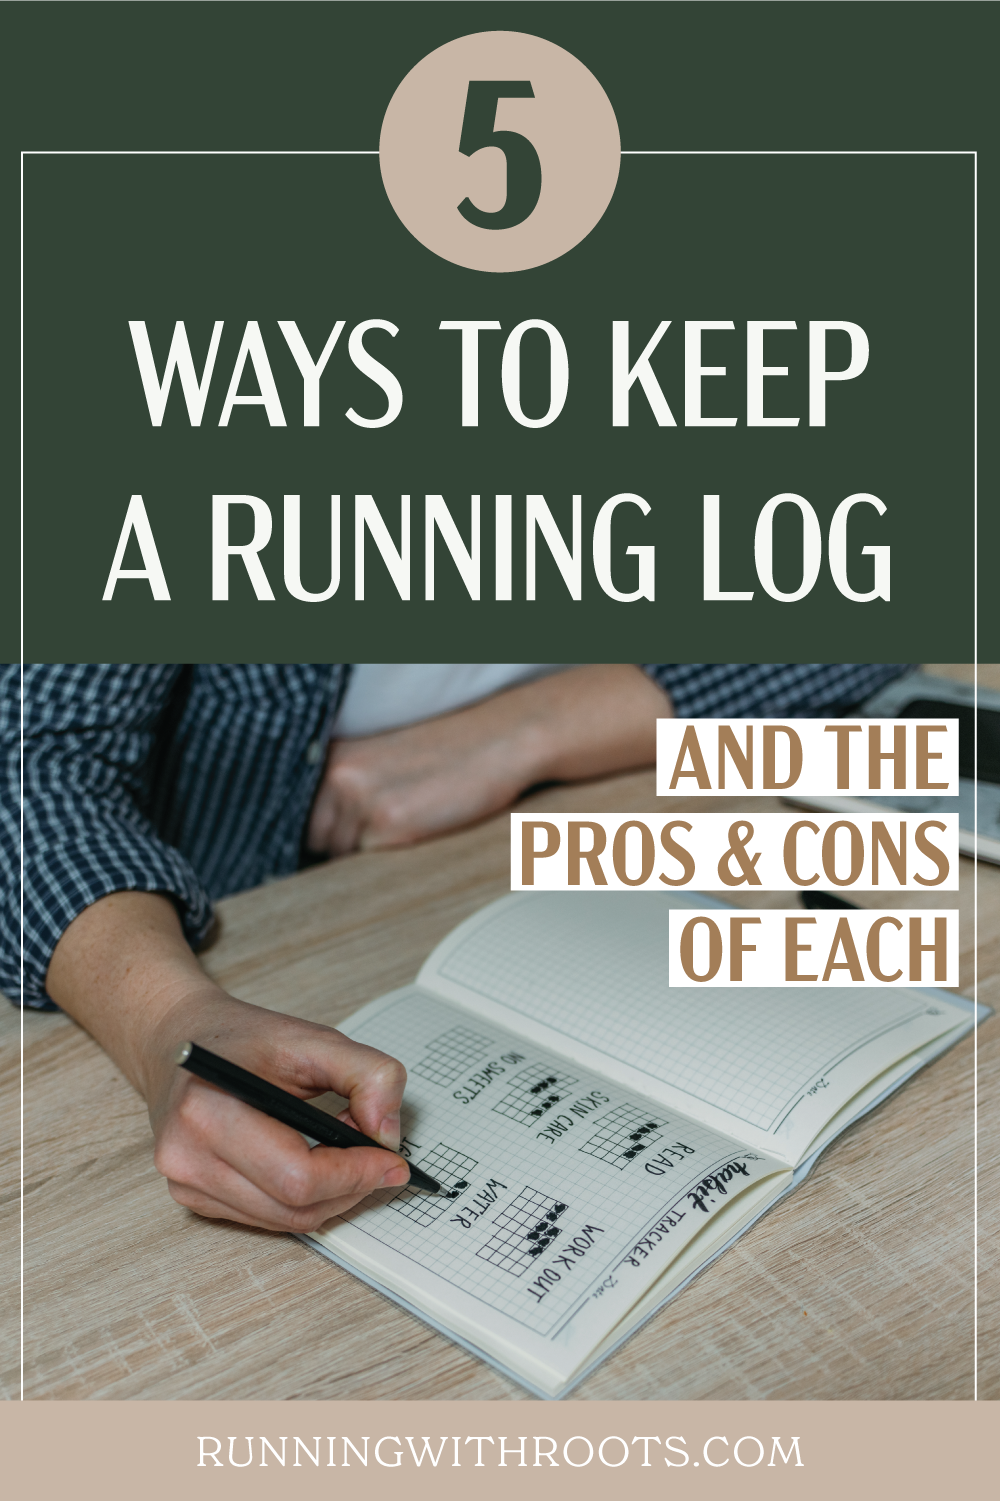 5 ways to keep a running log and the pros and cons of each